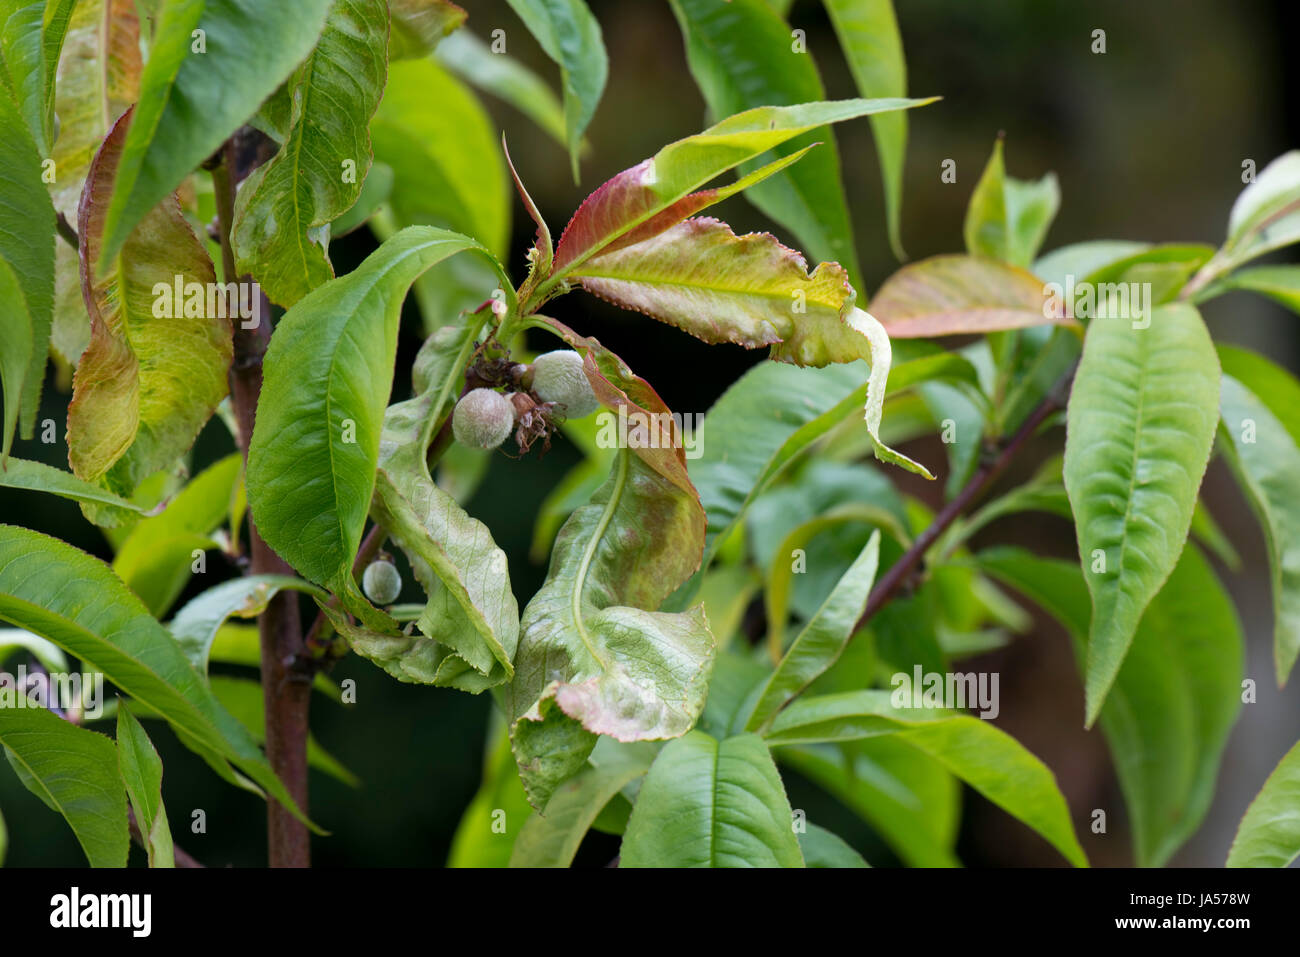 Peach leaf curl, Taphrina defrmans, a fungal disease deforming and blistering the leaves on a young nectarine tree - Stock Image